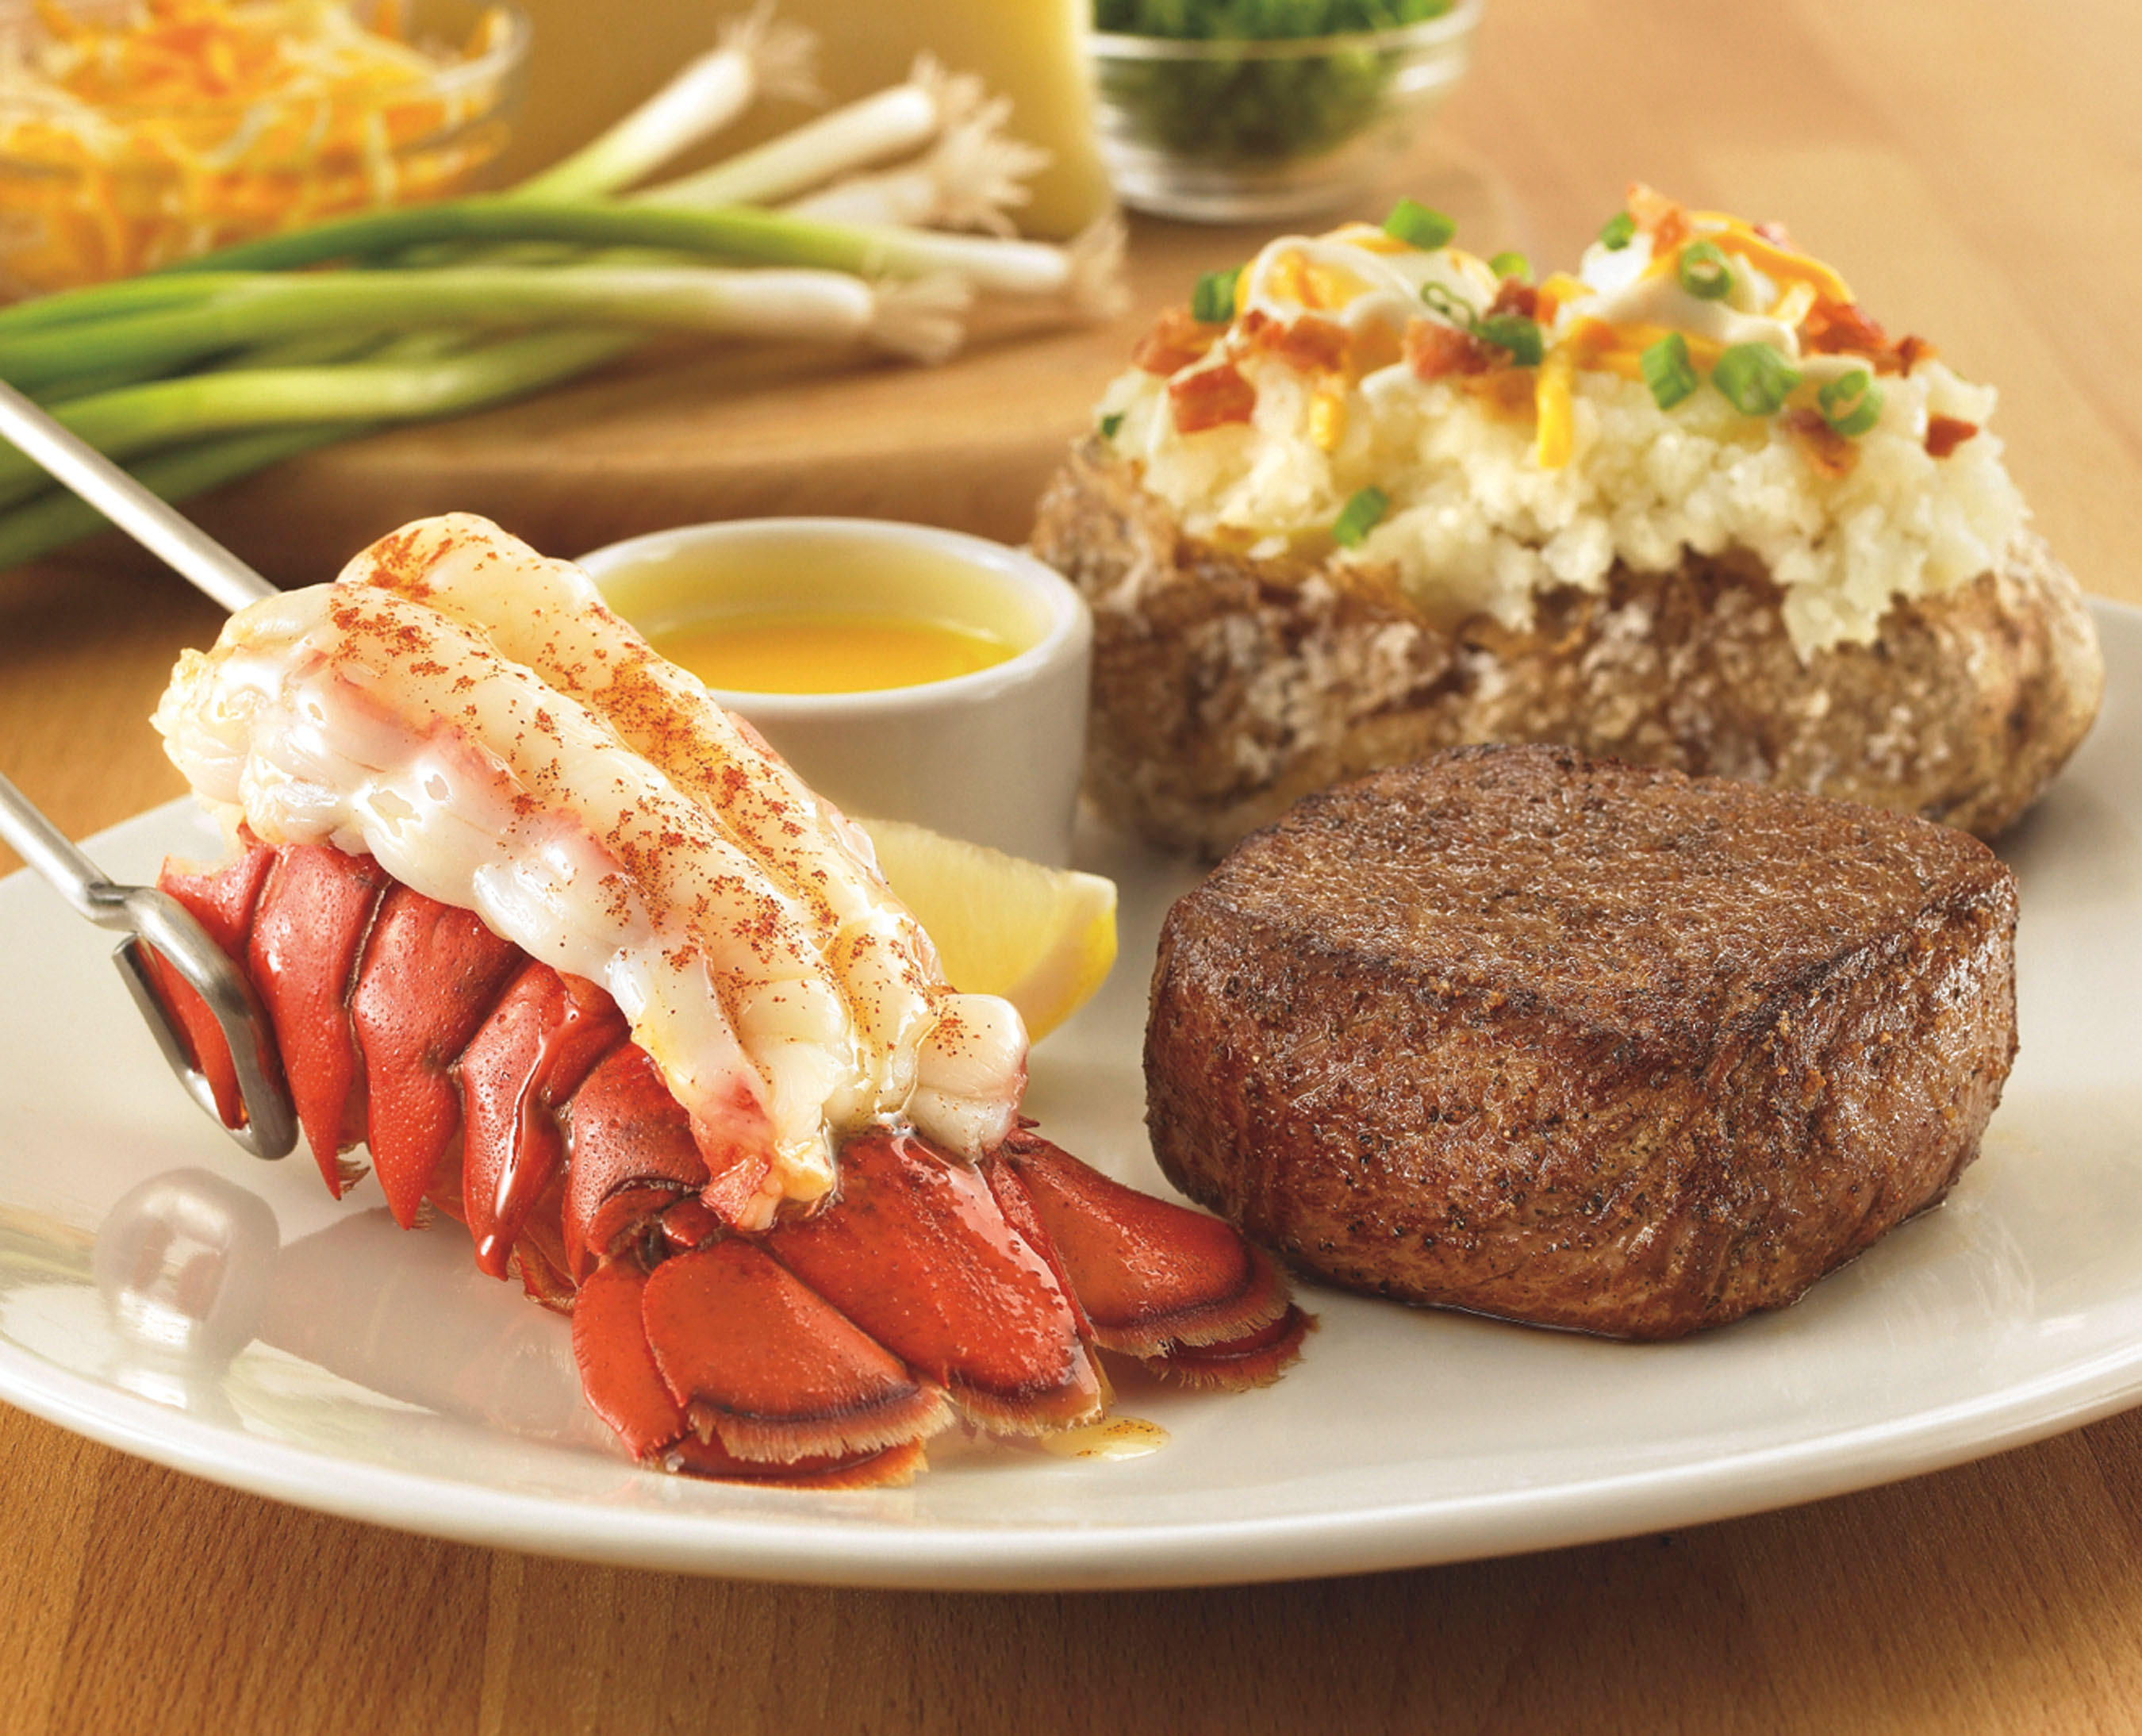 Outback lobster and steak special / Ace promo